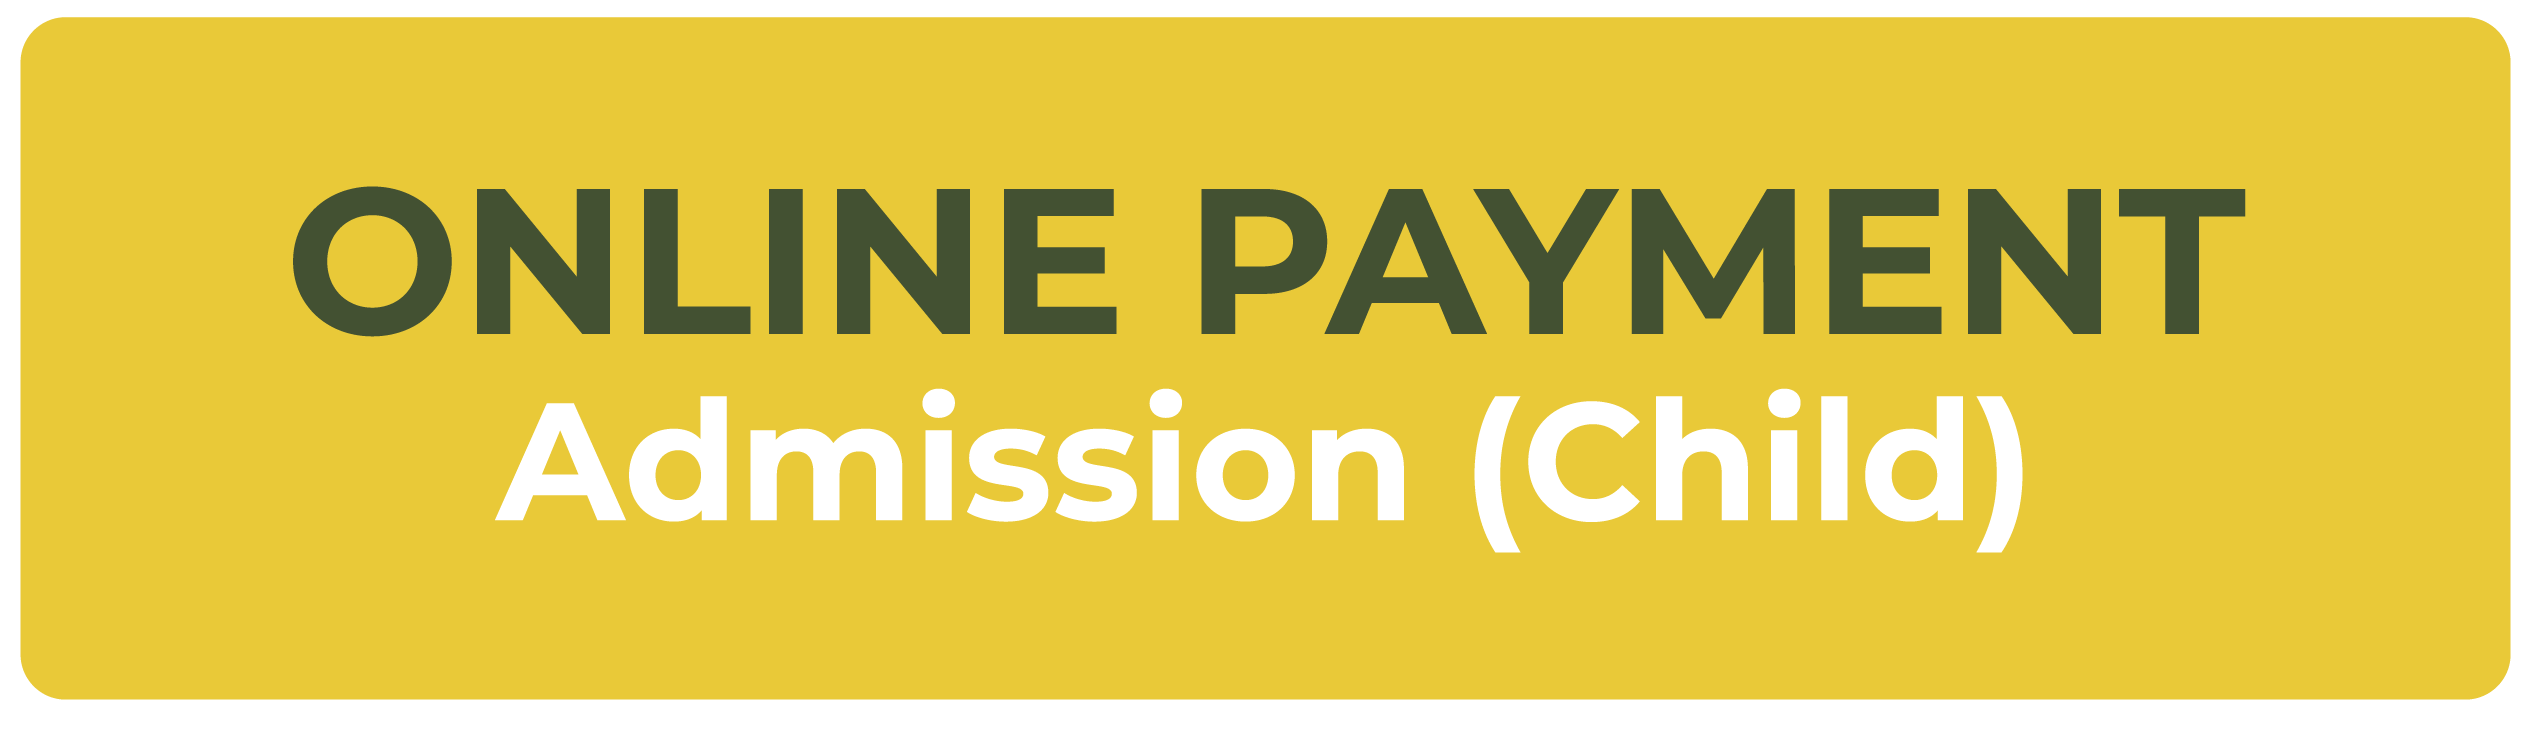 Online Payment Admission (Child)